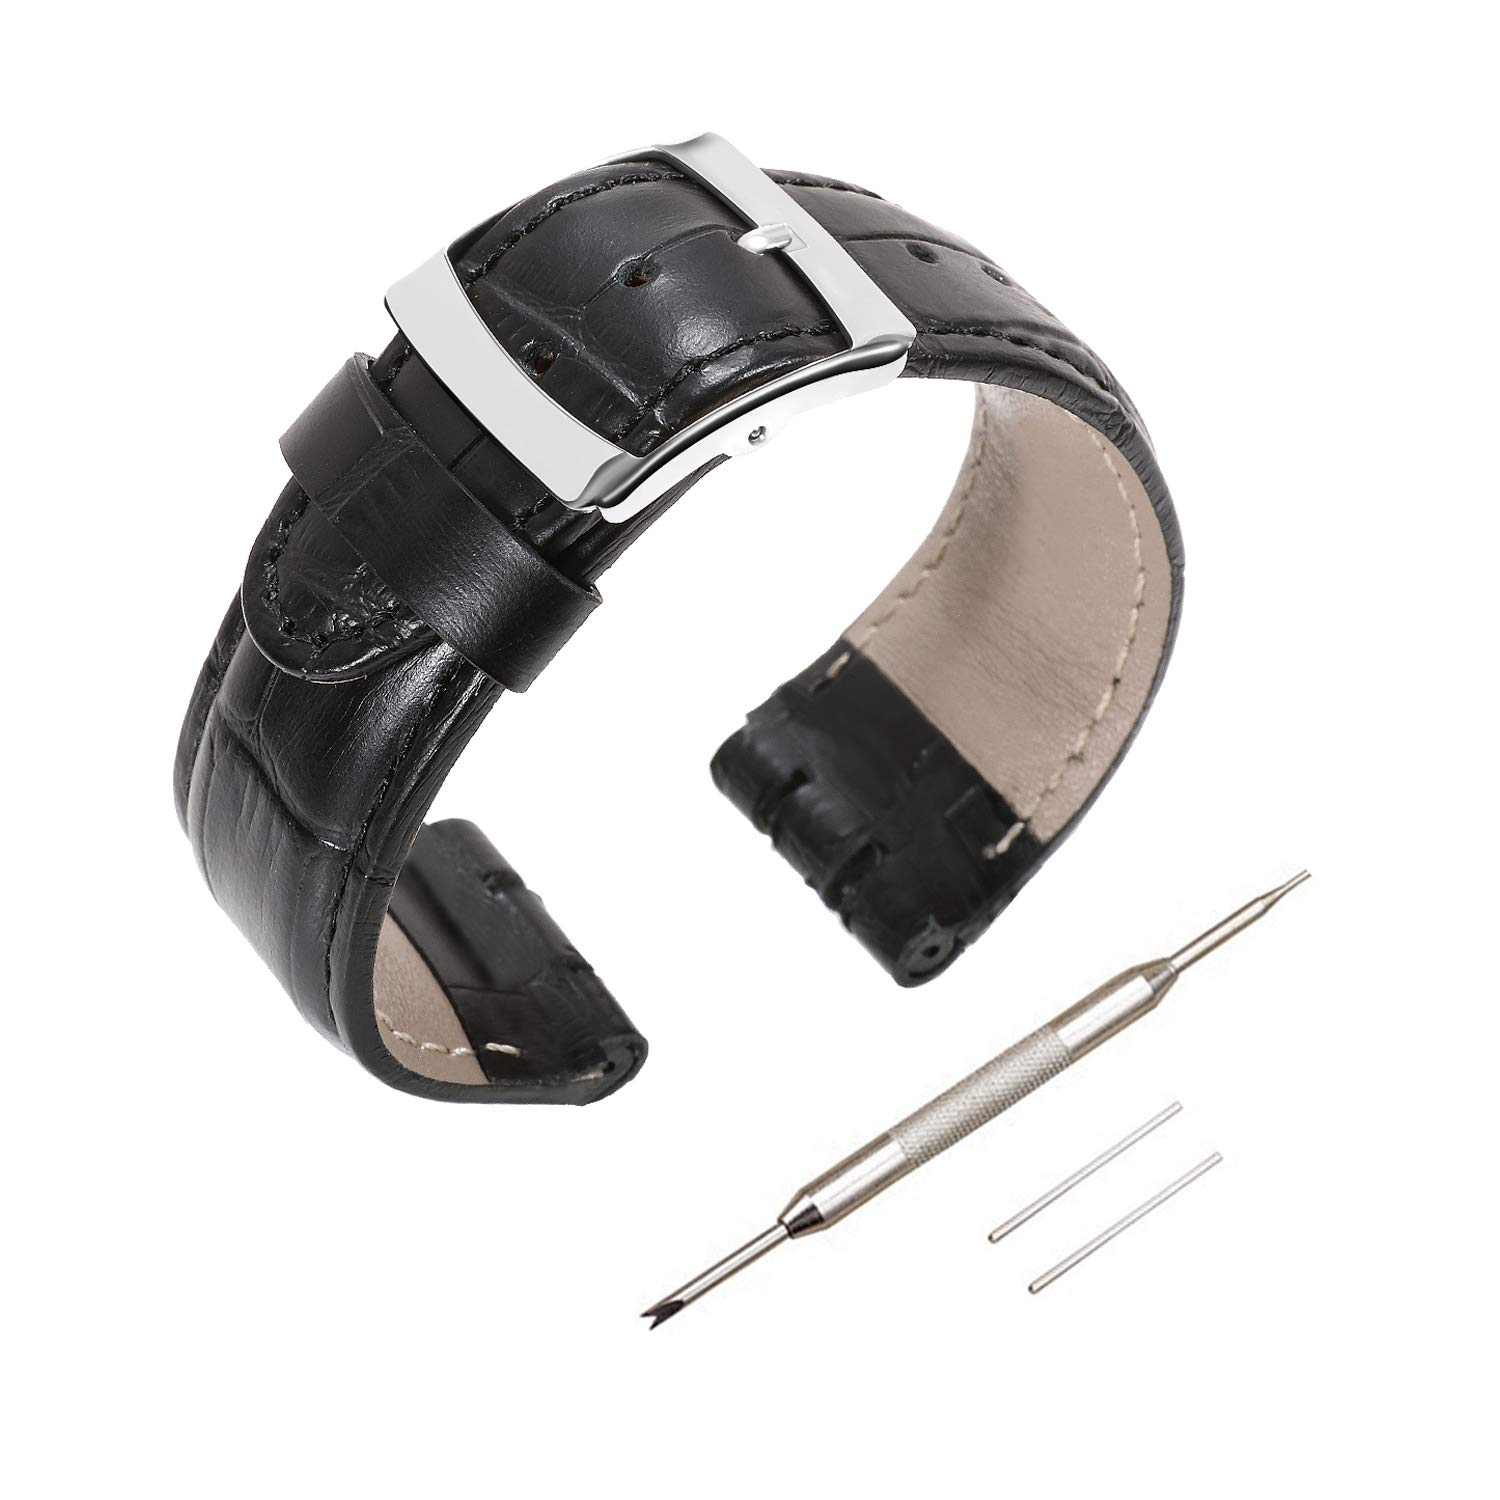 Genuine Leather Watch Strap Watch Band for Swatch, Accessories with Tool, Spring Bar Removal Tool, Full Calf Grain Skin Strip with Sliver Buckle